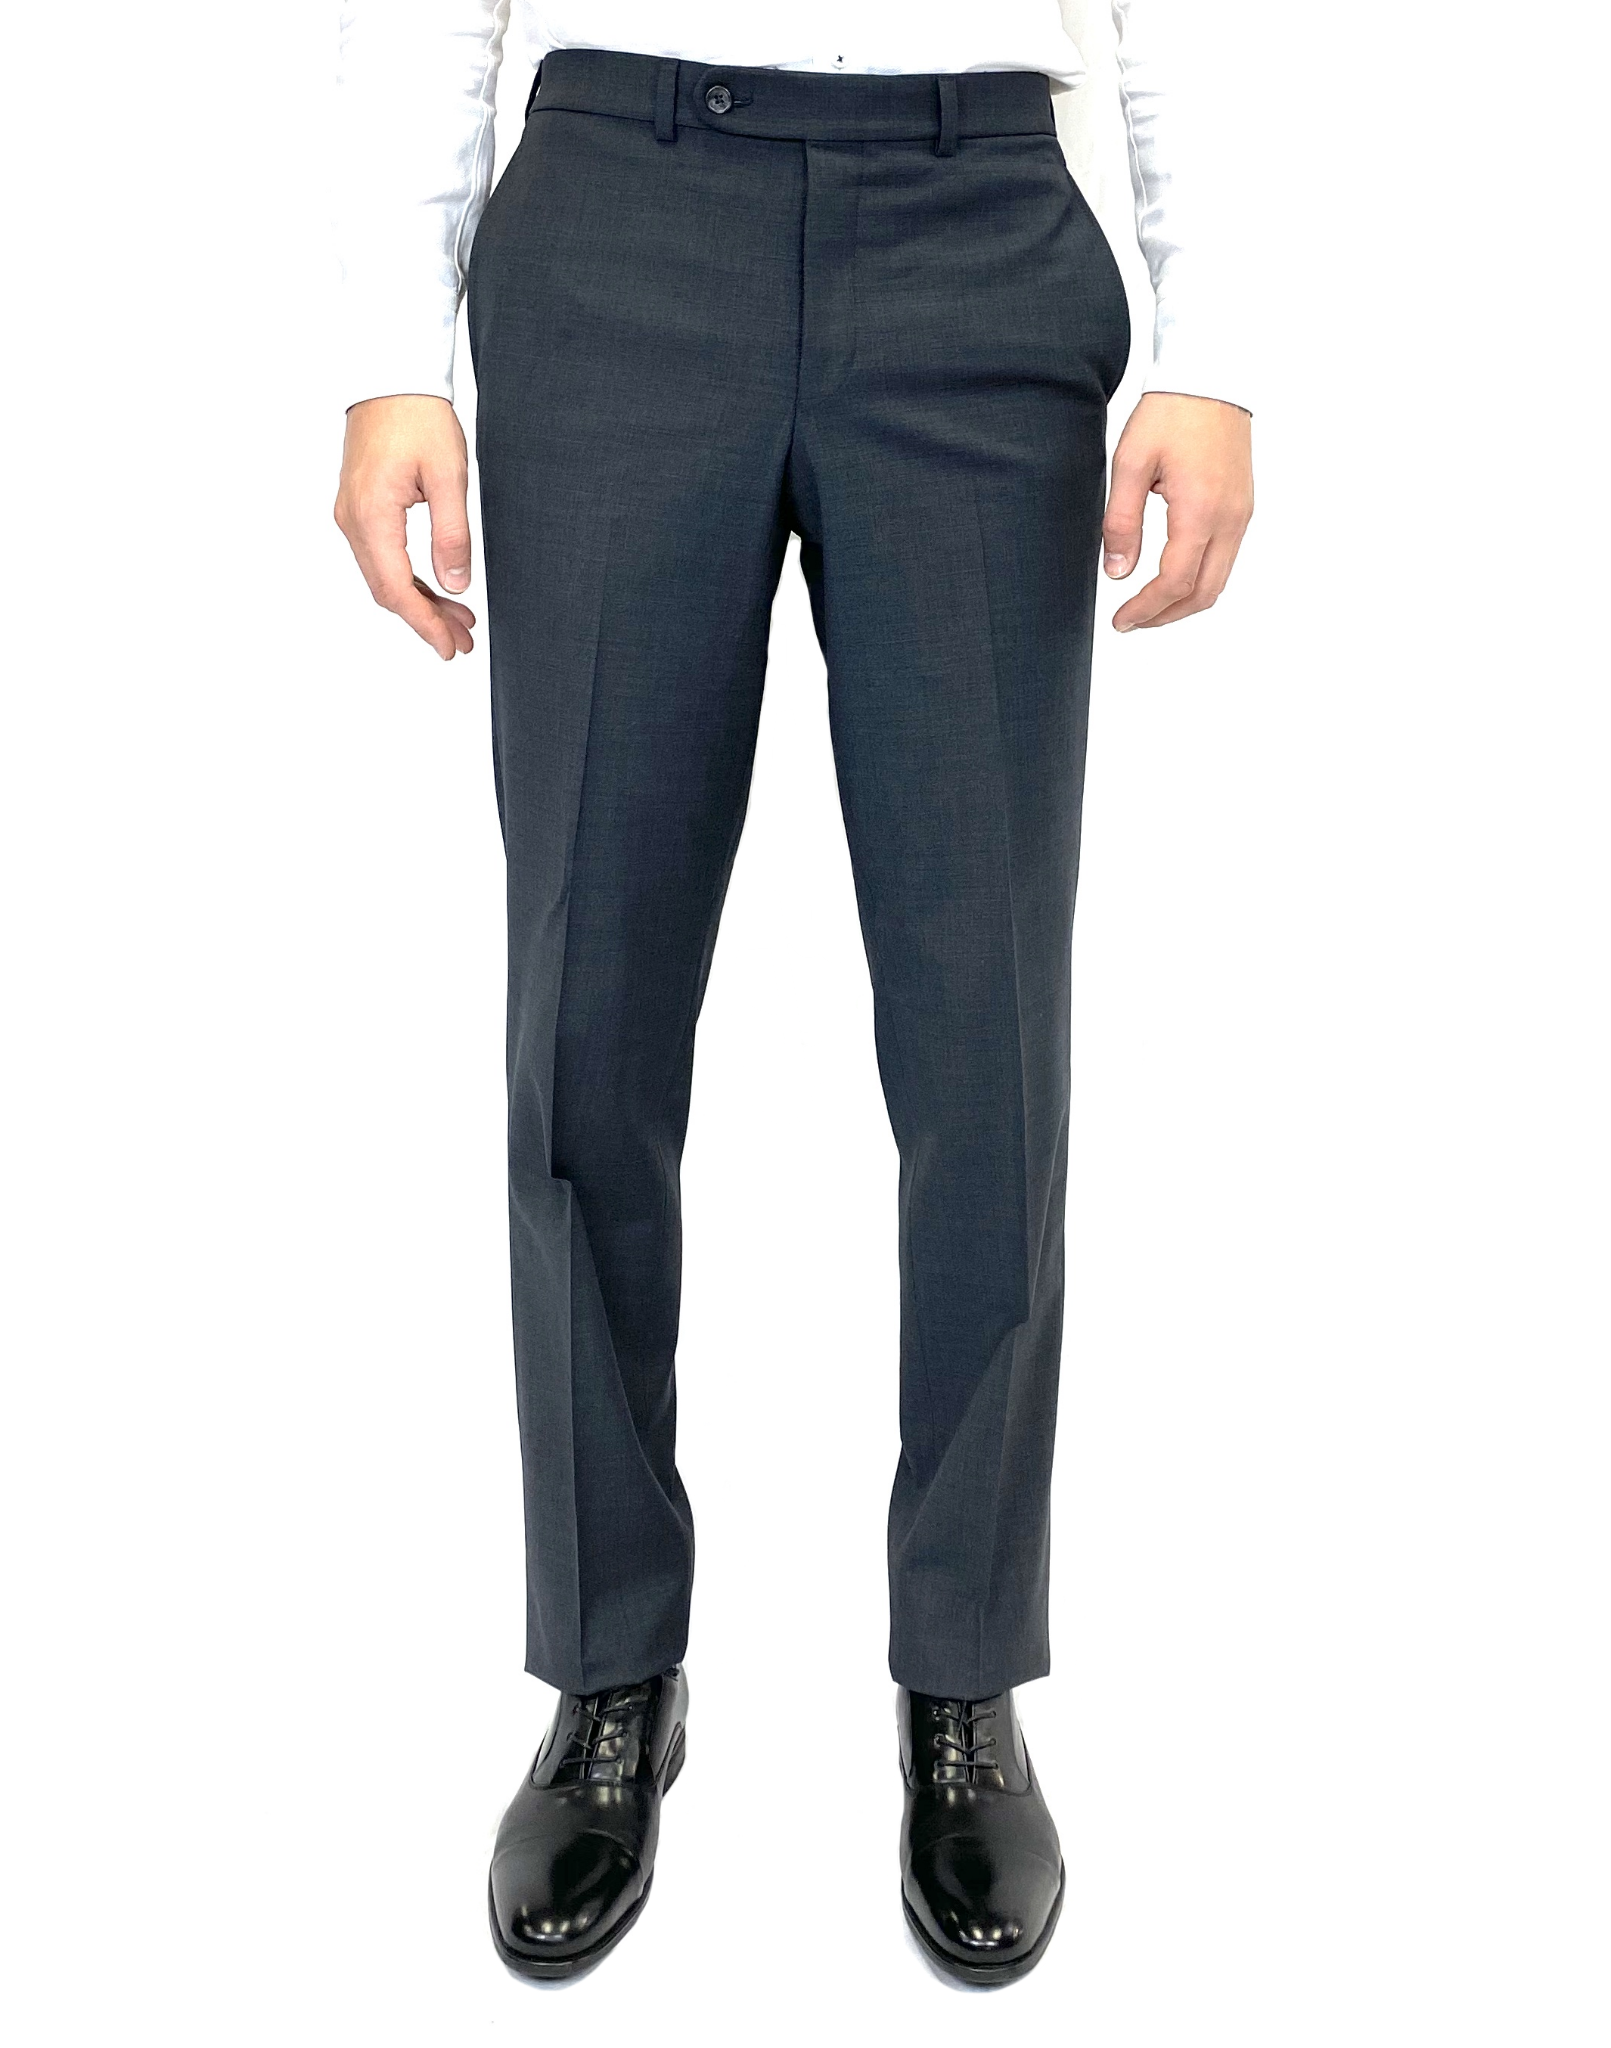 Riviera Classic Fit Traveler Dress Pant in Charcoal